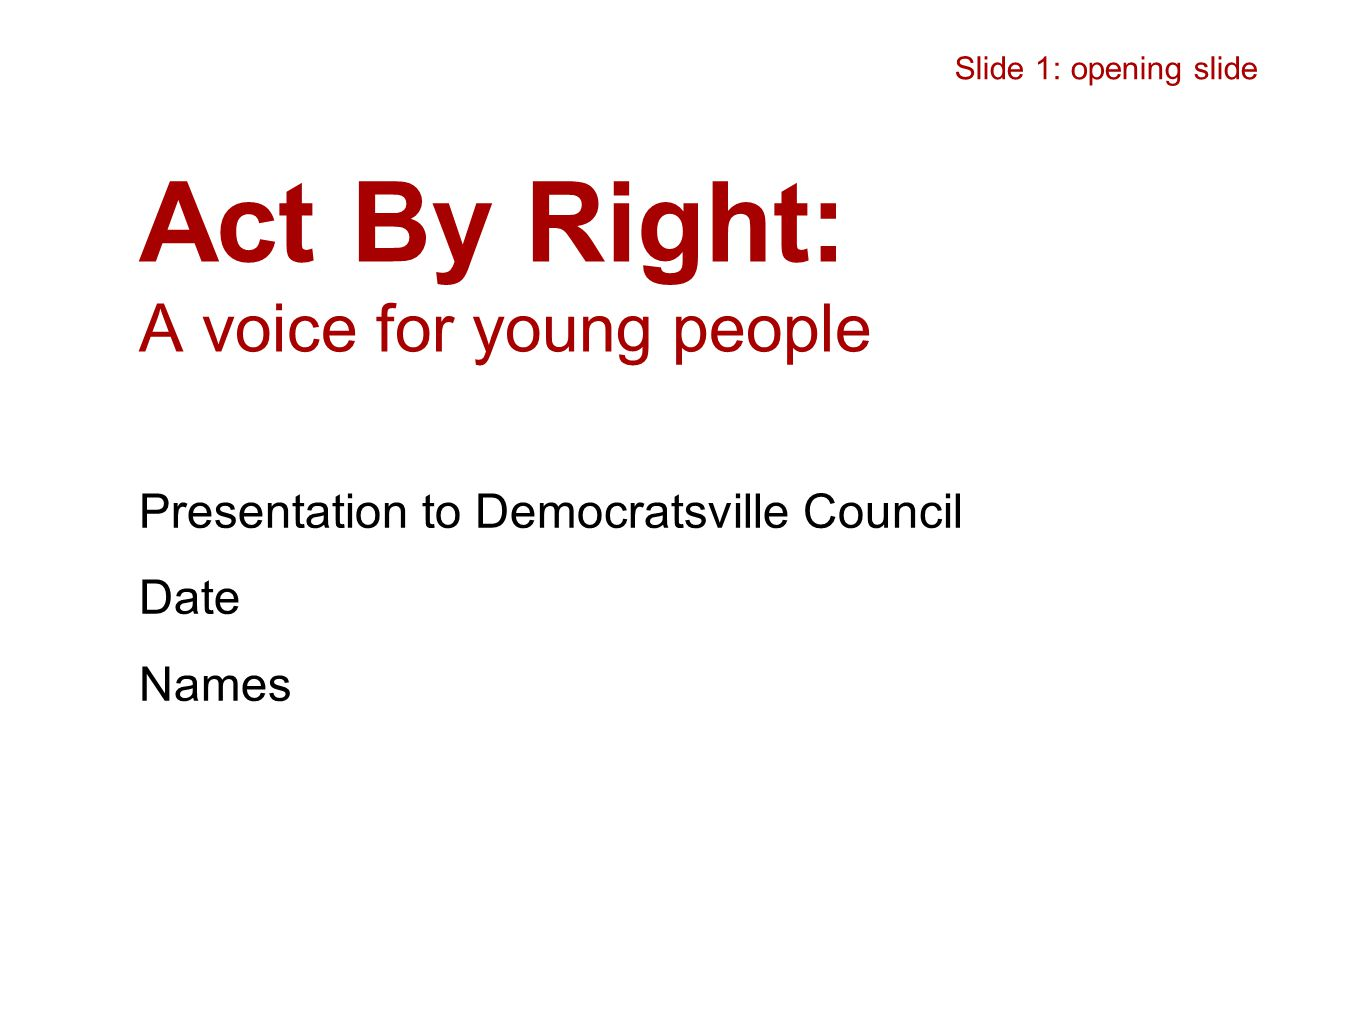 Act By Right: A voice for young people Presentation to Democratsville Council Date Names Slide 1: opening slide